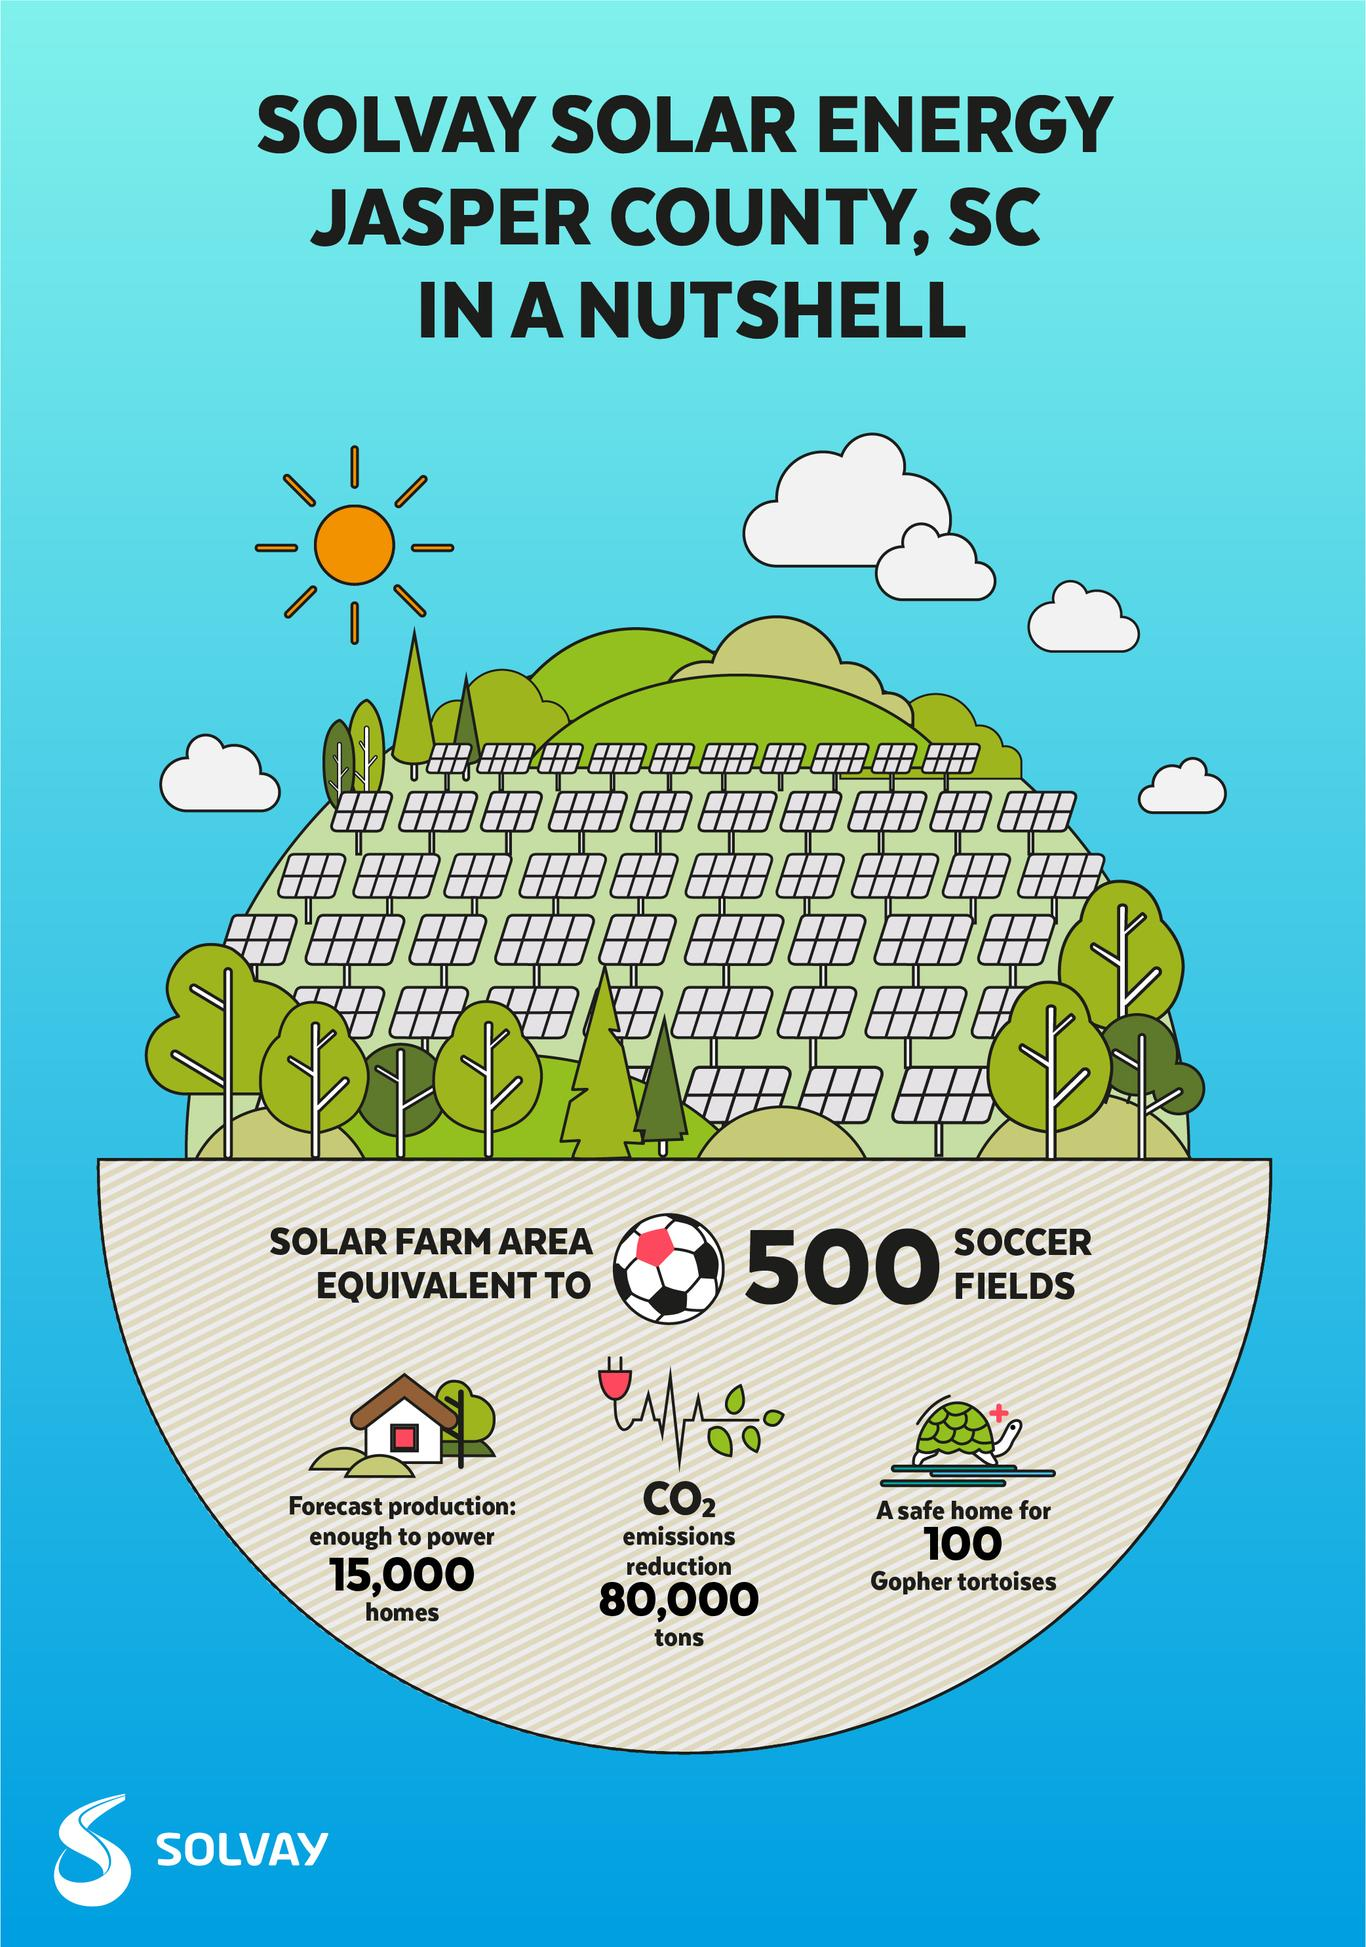 solvay-solar-farm-provides-enough-power-for-15000-homes-and reduce-co2-emissions